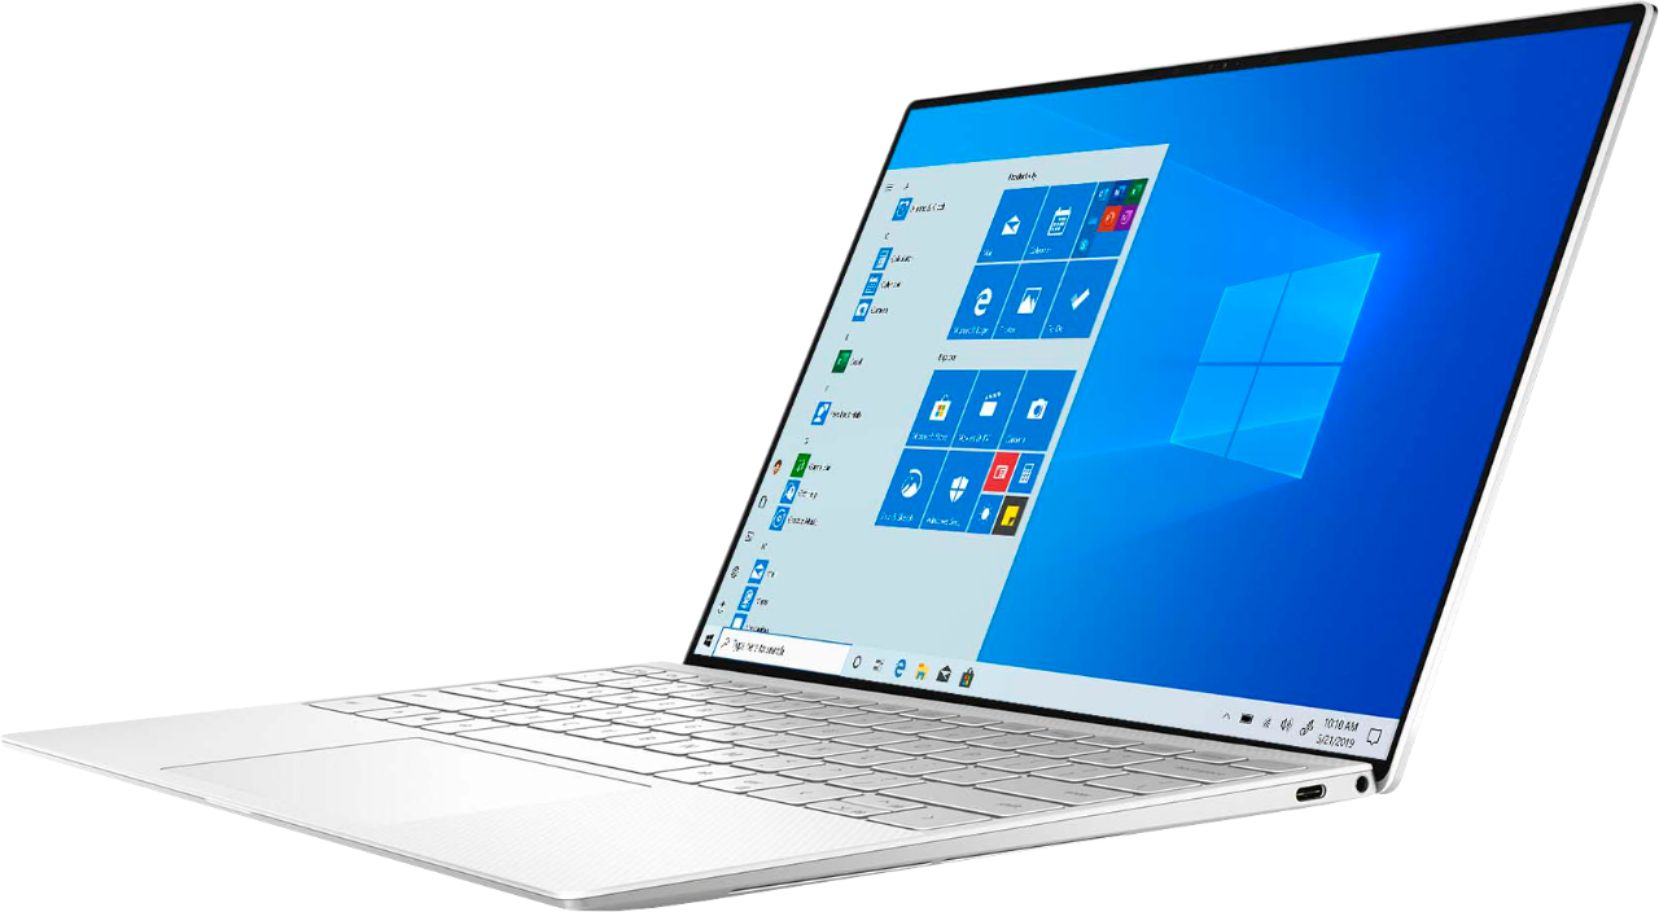 """Left Zoom. Dell - XPS 13.4"""" UHD+ Touch Laptop - Intel Core i7 - 16GB Memory - 512GB SSD - Frost White."""